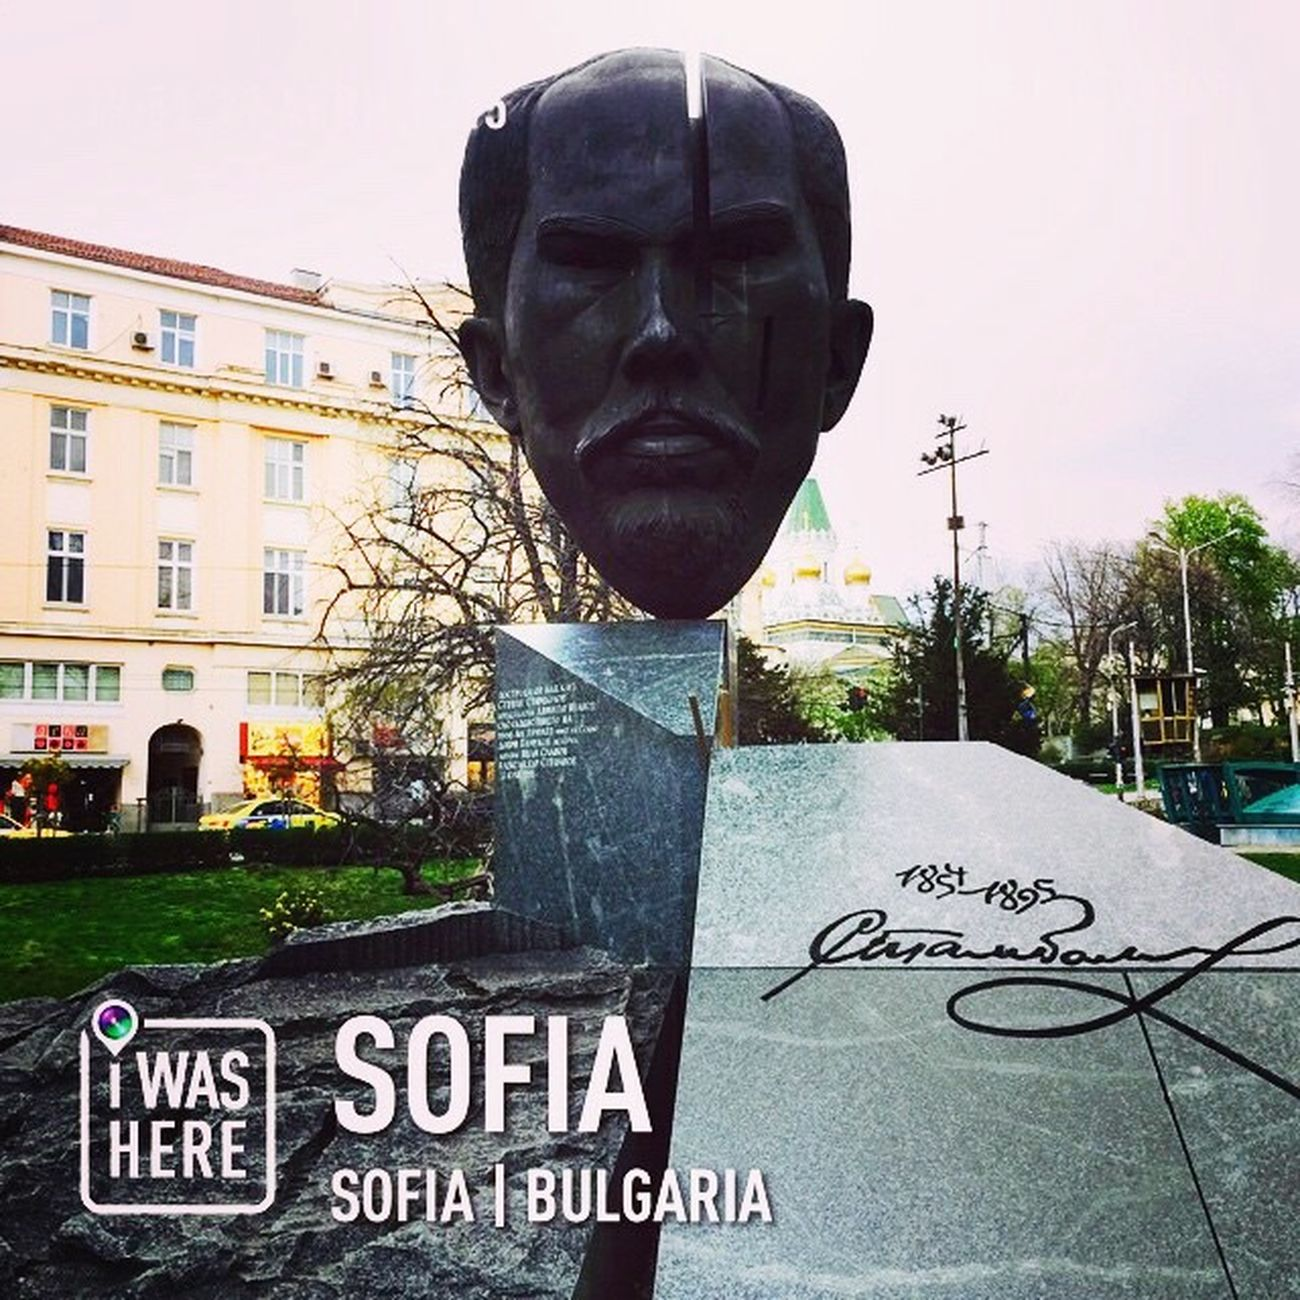 My Bulgaria Travel Series : Sofia, Bulgaria Travel Photography Balkans Adventure Solotraveler By Myself Lizara ❤️ - winners are too busy to be sad. Too optimistic to be fearful. Too positive to be doubtful and too determined to be defeated. Keep your head up cos you are a winner ! Fly far and away ✈️❤️